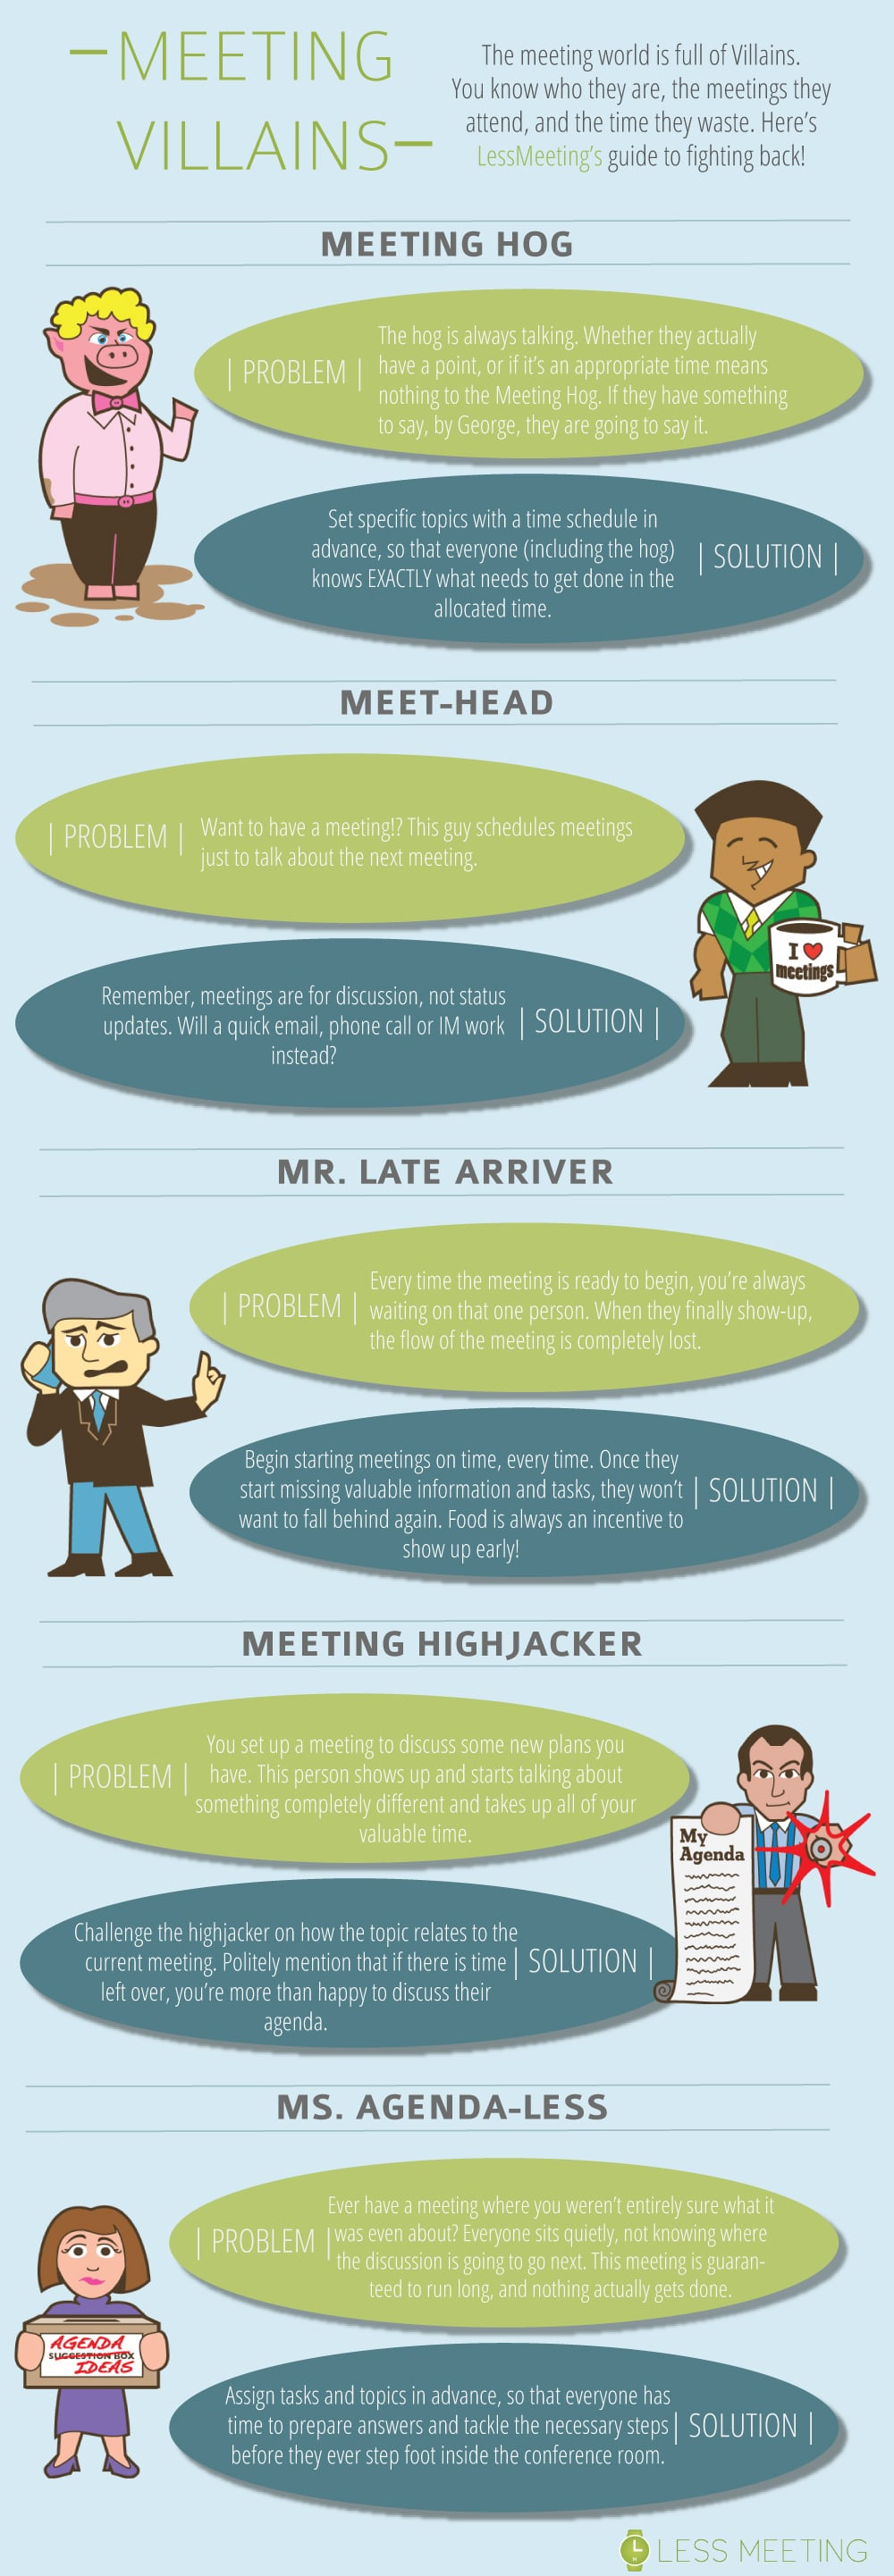 5 Kinds Of Business Meeting Villains Who Waste Your Time [Infographic]